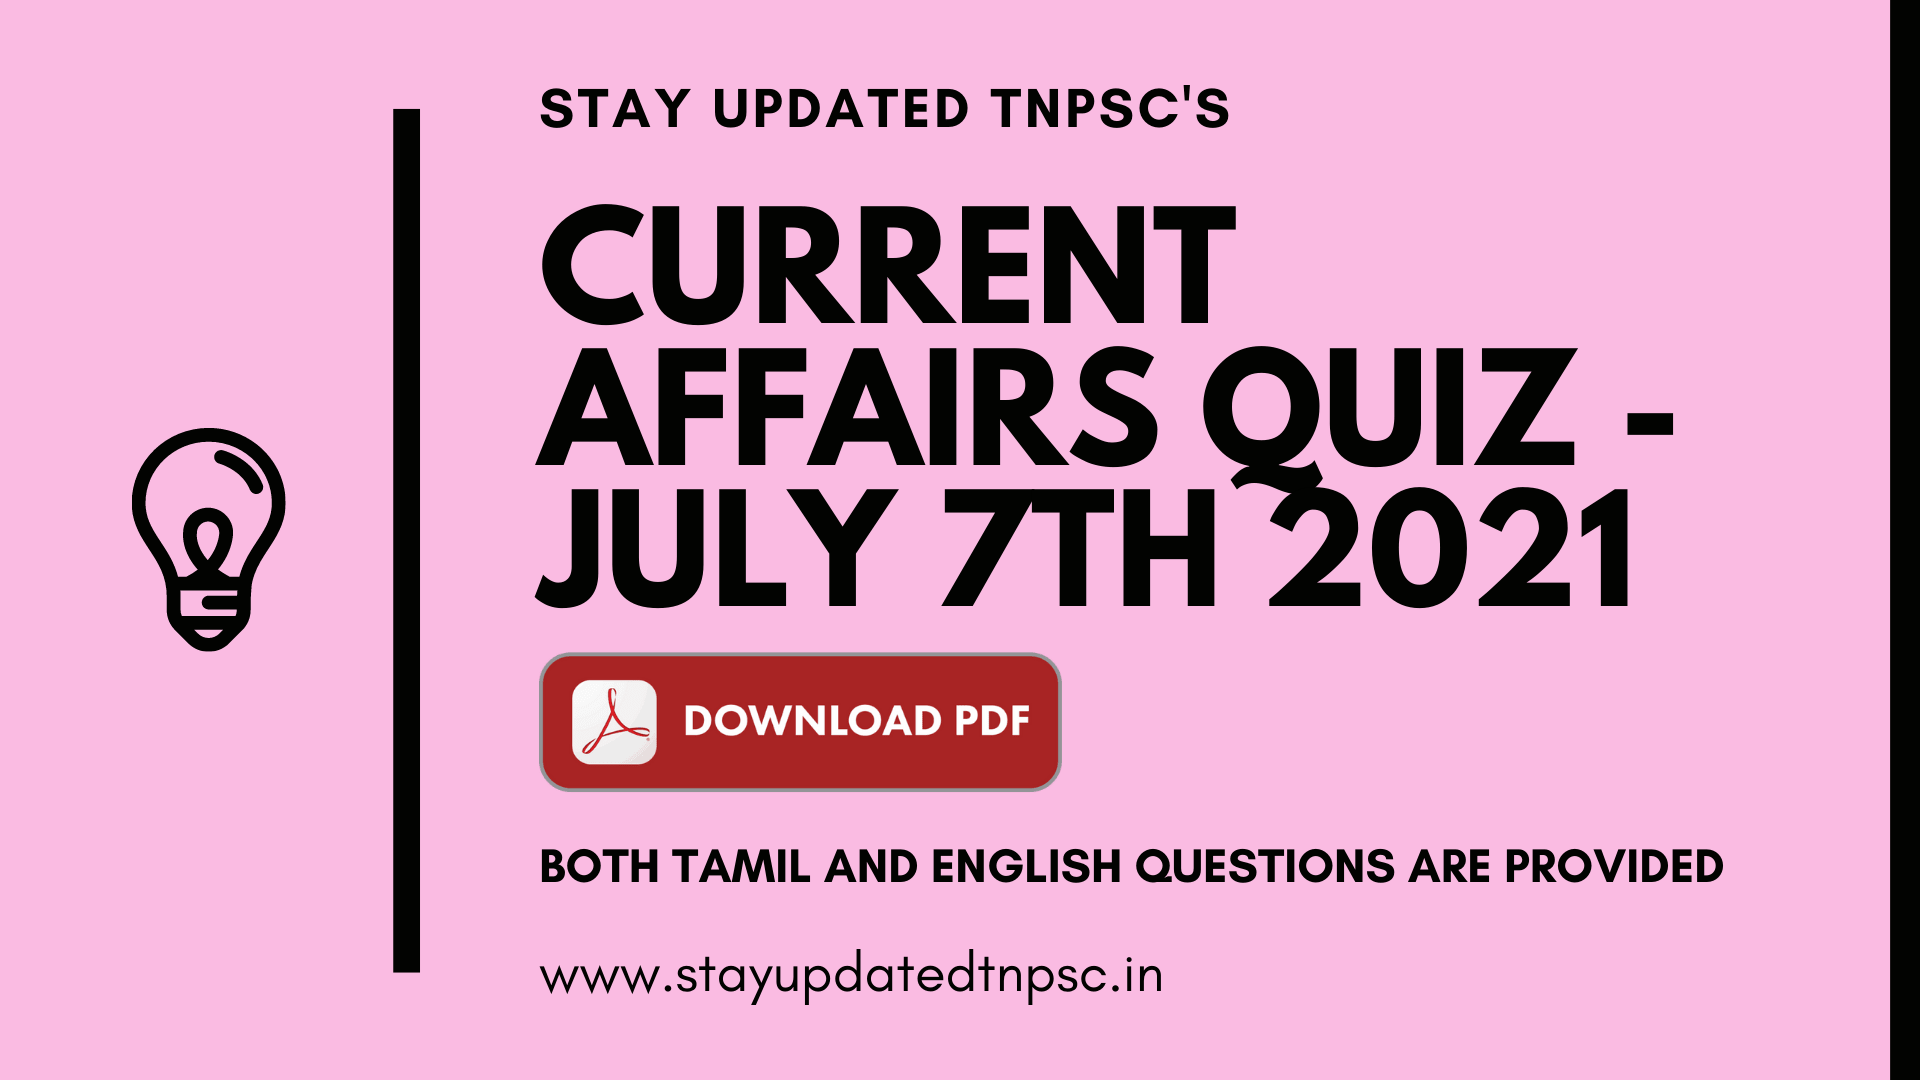 TNPSC DAILY CURRENT AFFAIRS: 07 JUNE 2021 TNPSC தினசரி நடப்பு நிகழ்வுகள்: 07 ஜூன் 2021 BOTH TAMIL AND ENGLISH QUESTIONS ARE PROVIDED DOWNLOAD PDF AT THE END OF THE QUESTIONS